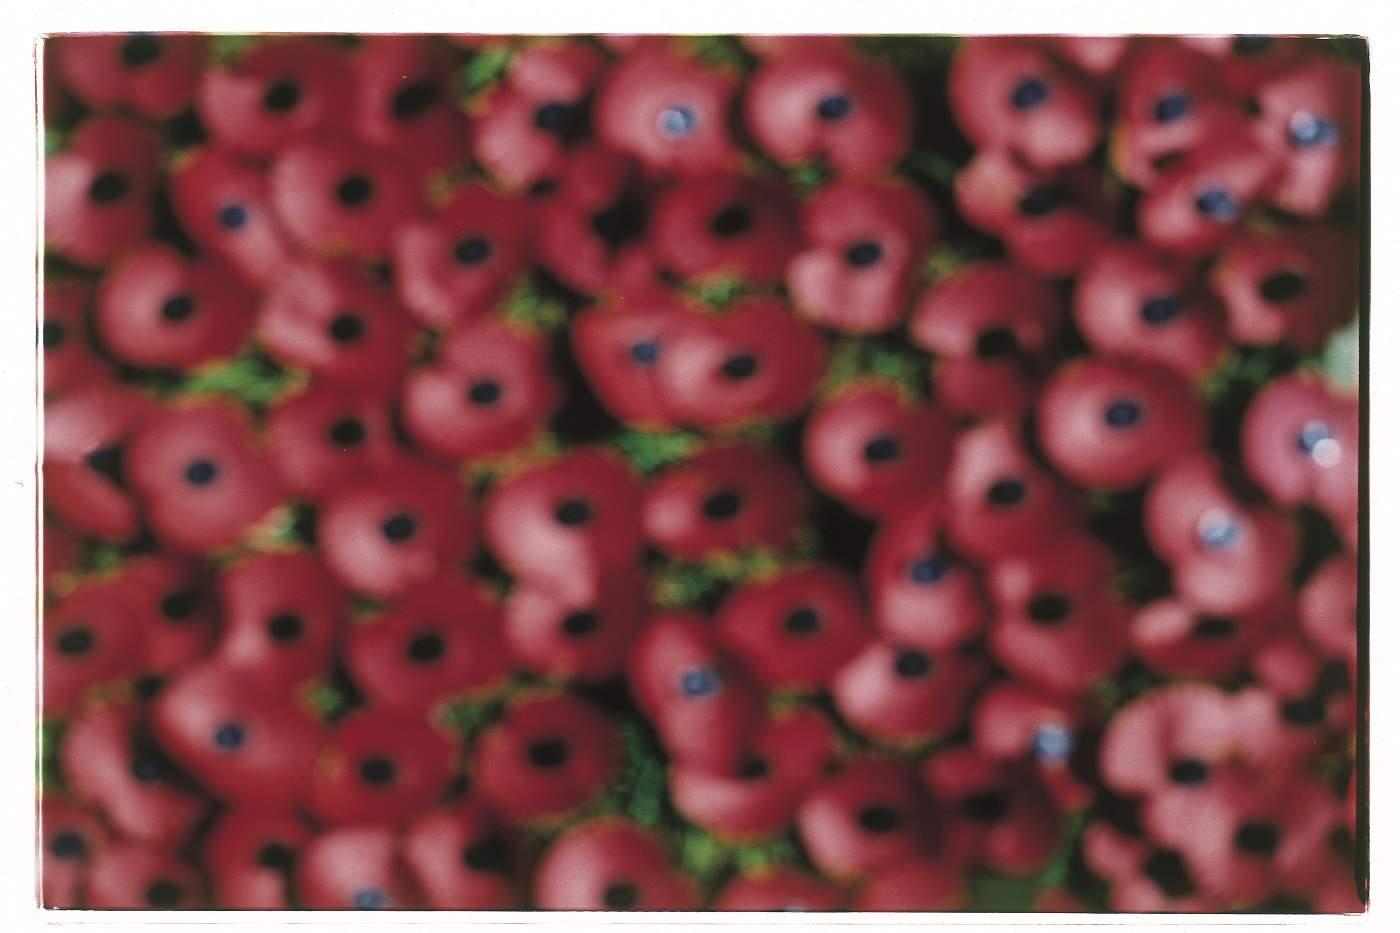 out of focus poppies